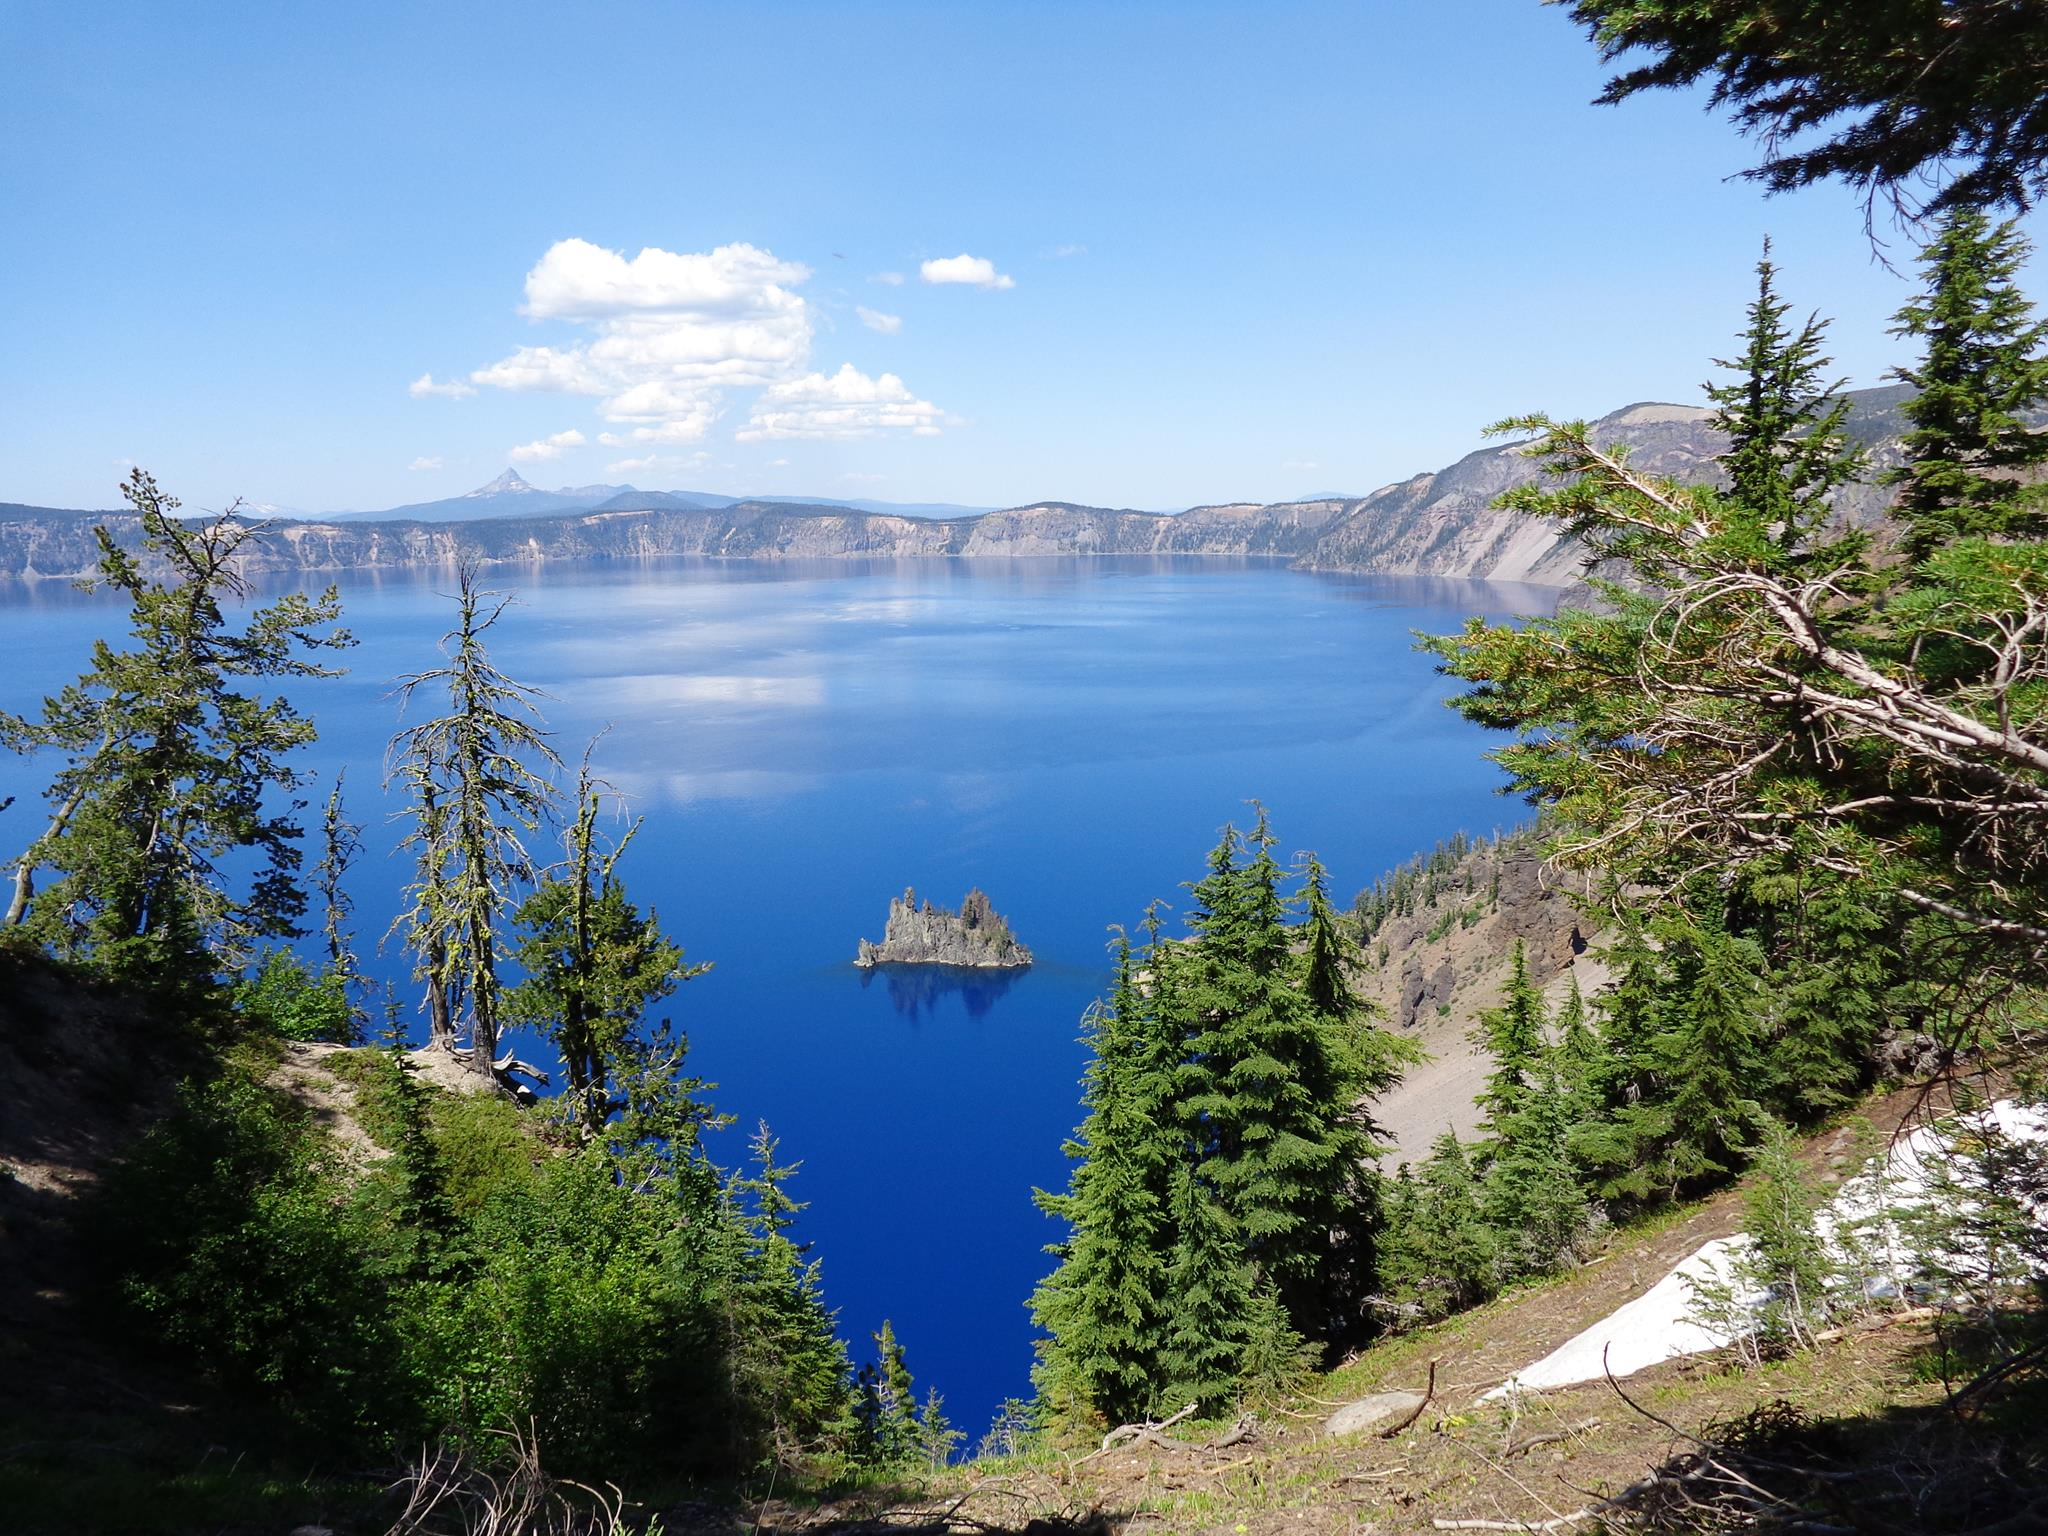 Crater Lake National Park MowryJournalcom - 10 cool landmarks in crater lake national park